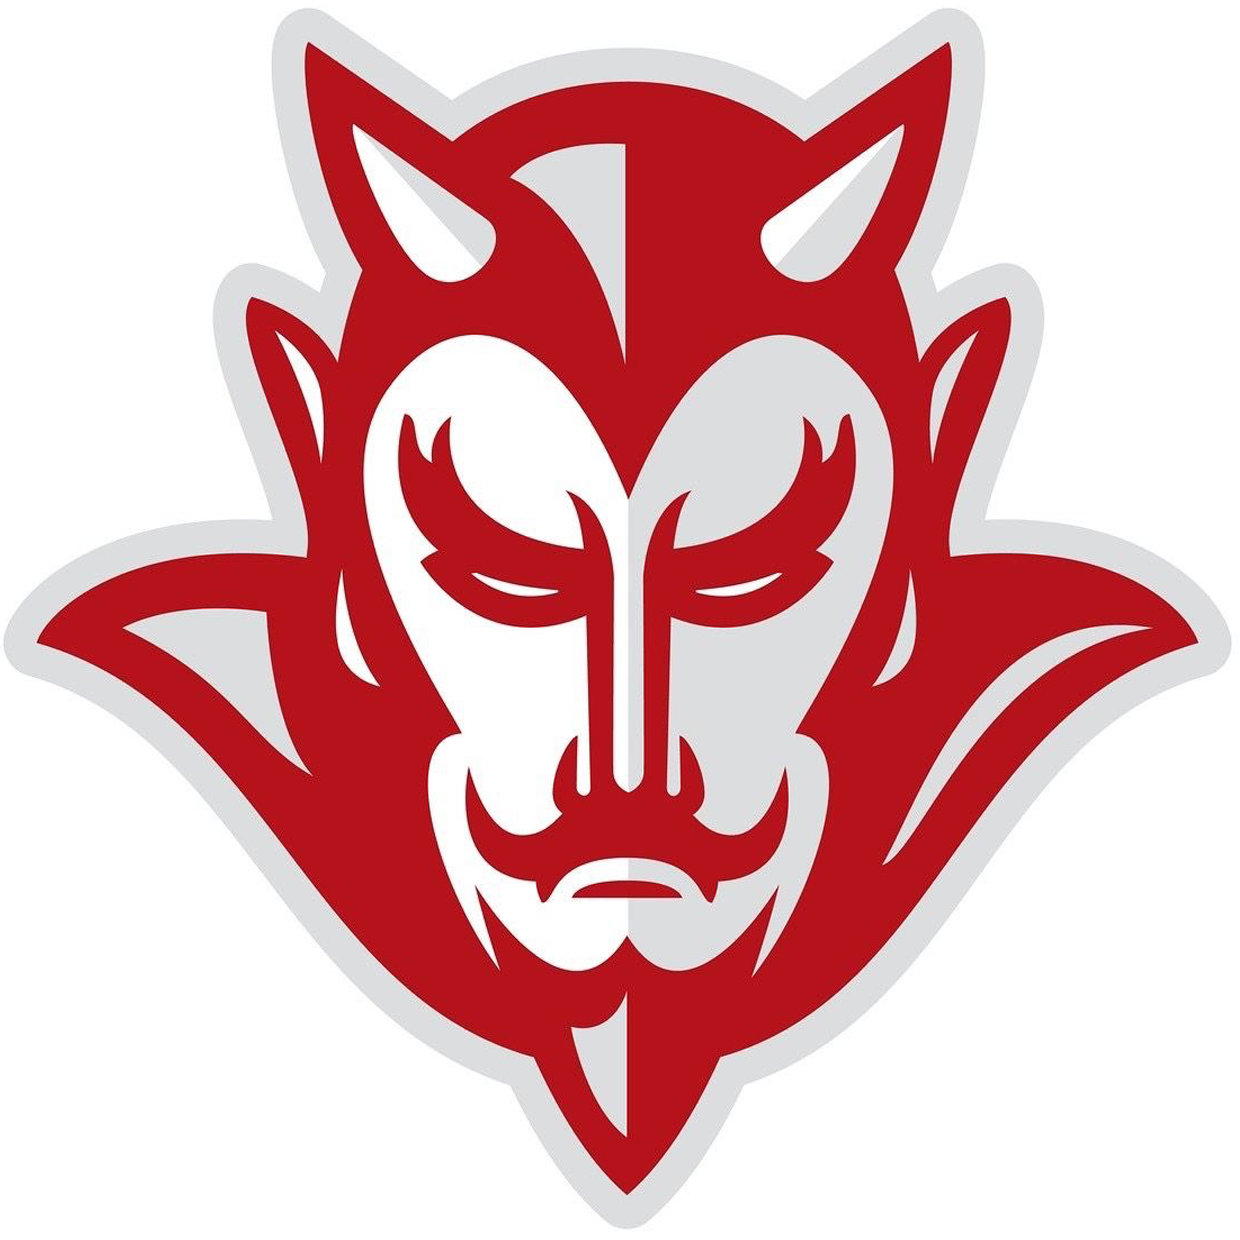 Neah Bay Red Devils